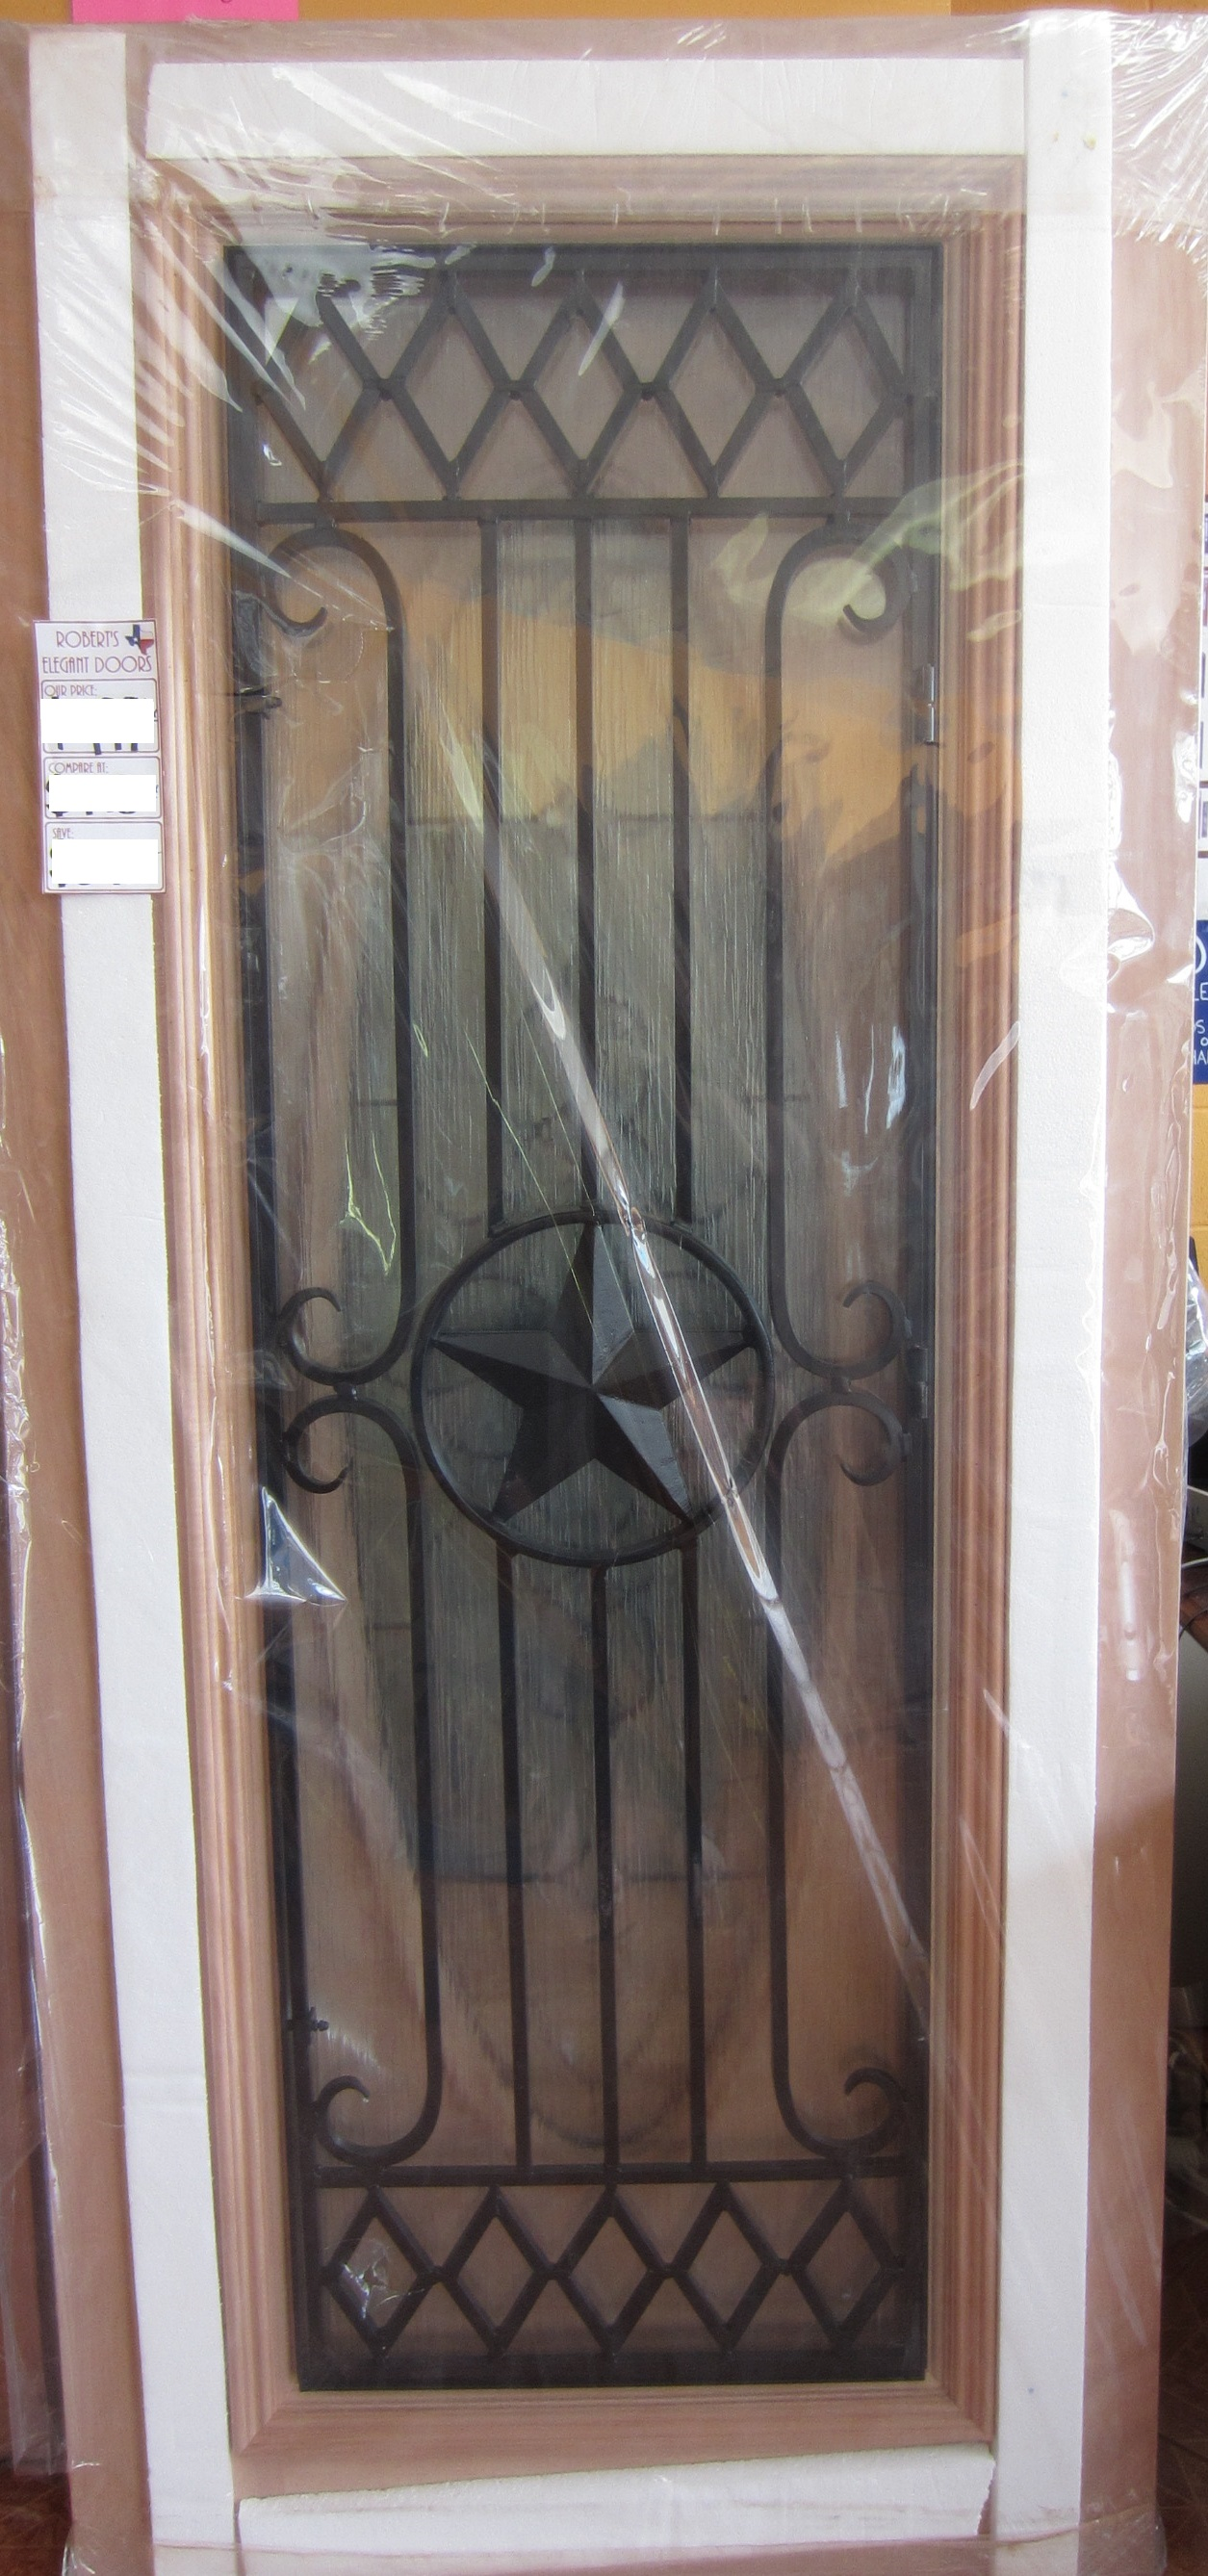 2676 #7F614C Houston Cheap Doors Houston Doors Front Doors Houston    wallpaper Mahogany Doors Houston 46051255